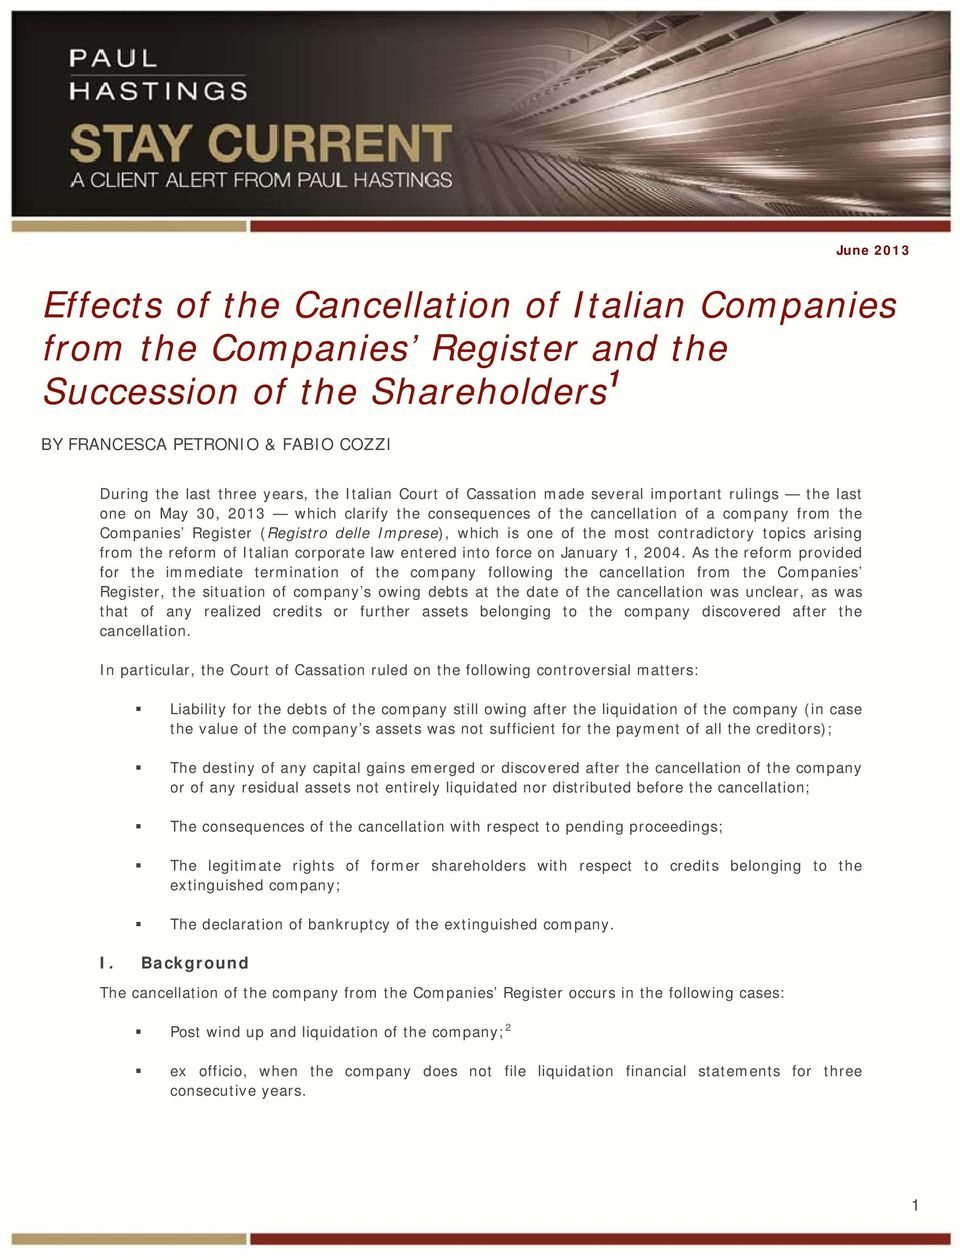 Imprese), which is one of the most contradictory topics arising from the reform of Italian corporate law entered into force on January 1, 2004.